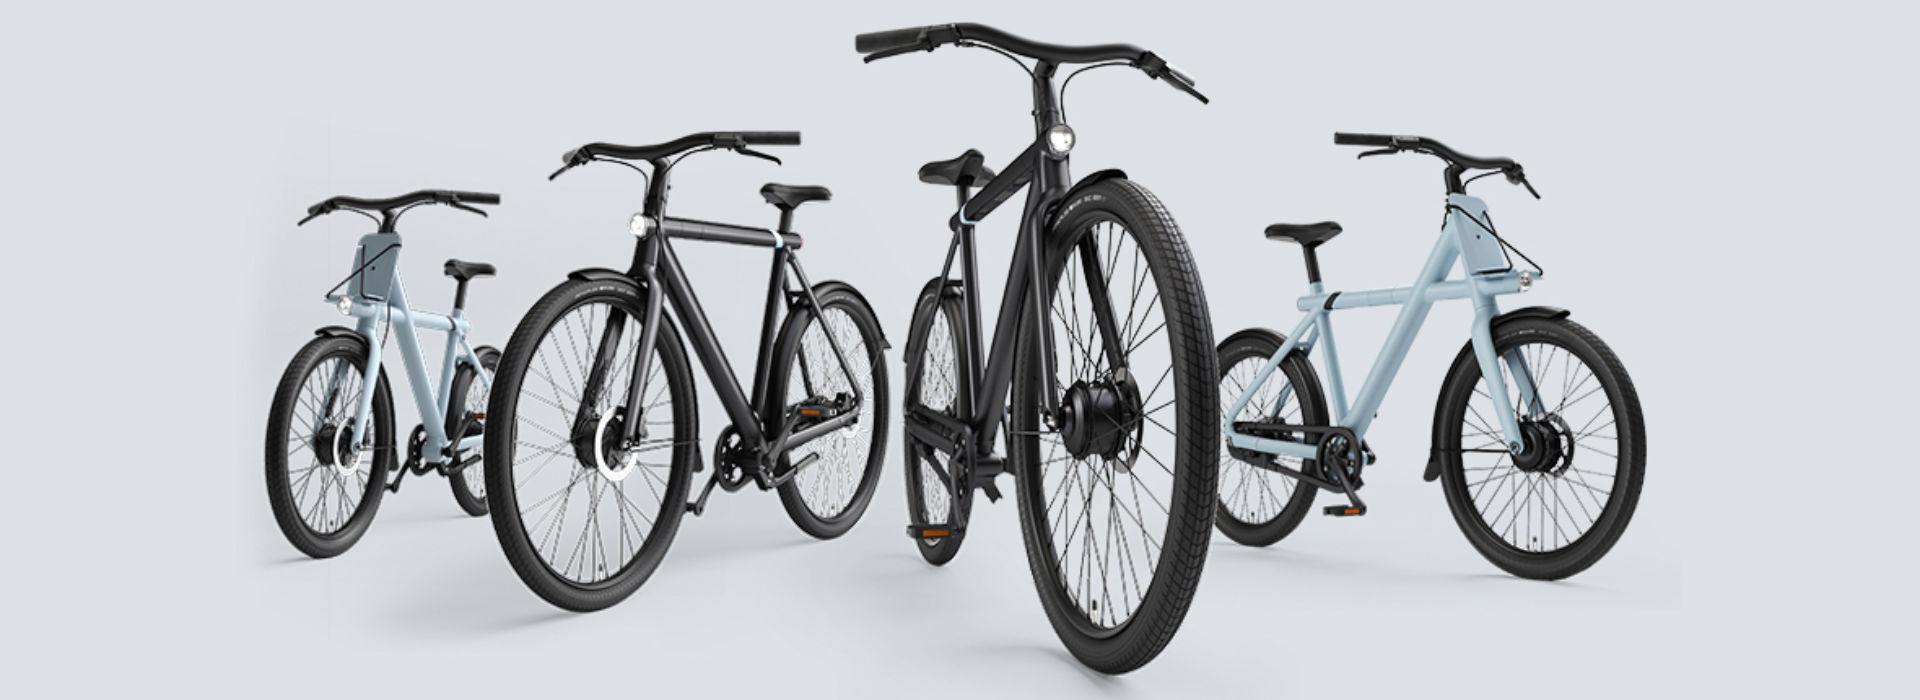 VanMoof S3 & X3の機能のご紹介: It's time to ride the future